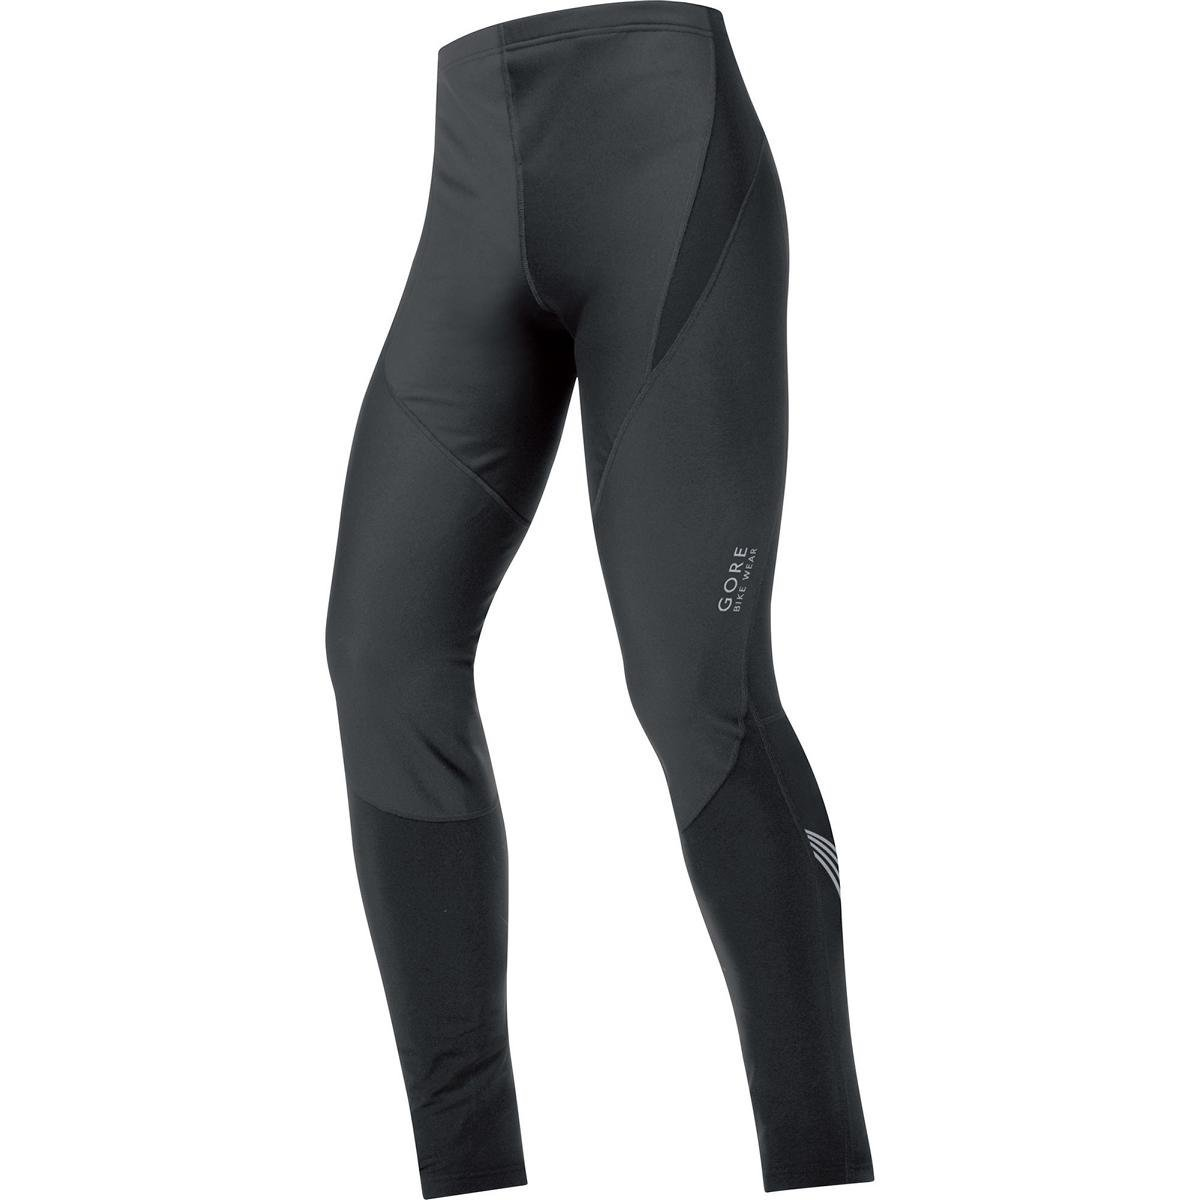 GORE BIKE WEAR Herren Lange Soft Shell Thermo-Fahrradhose, GORE WINDSTOPPER, ELEMENT WS SO Tights